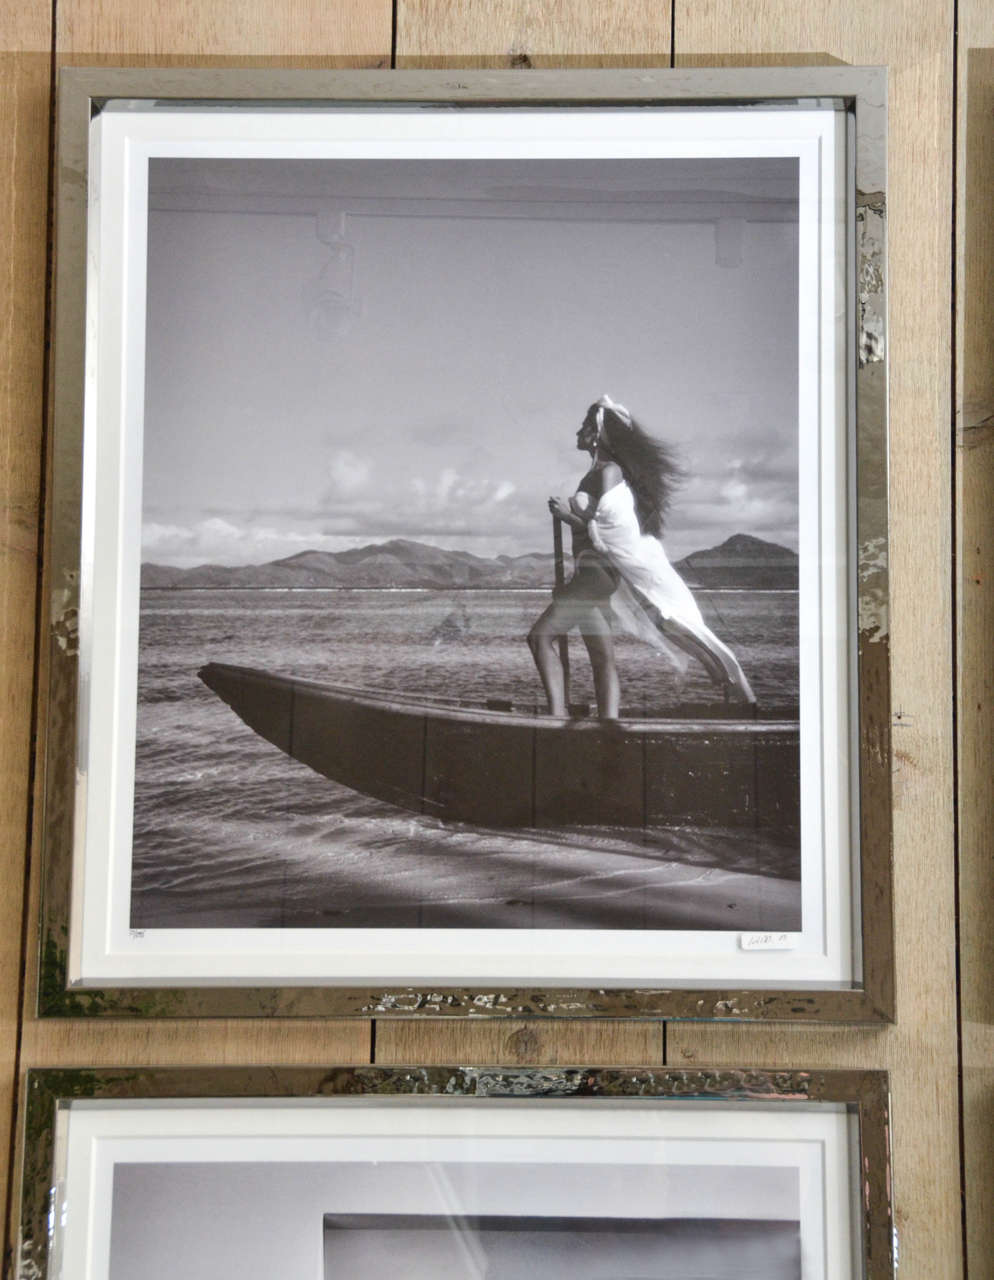 Fashion Photographs by Willie Christie in Silvered Metal Frames 3